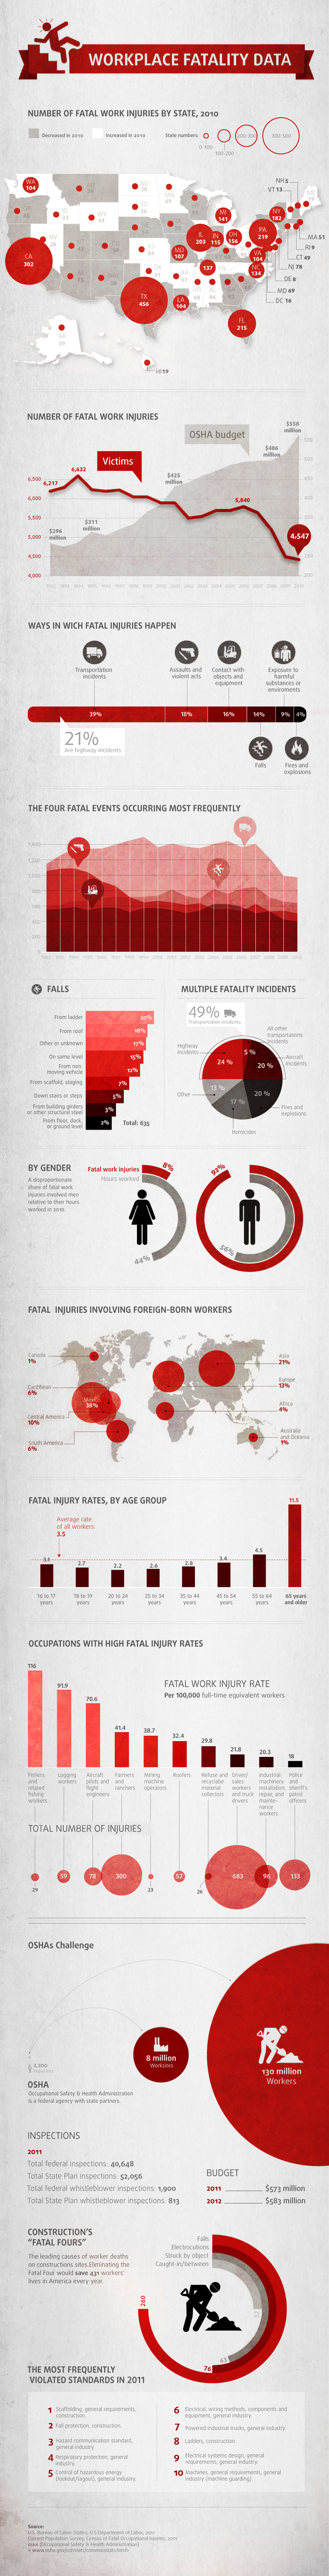 Fatal Workplace Injuries-Infographic